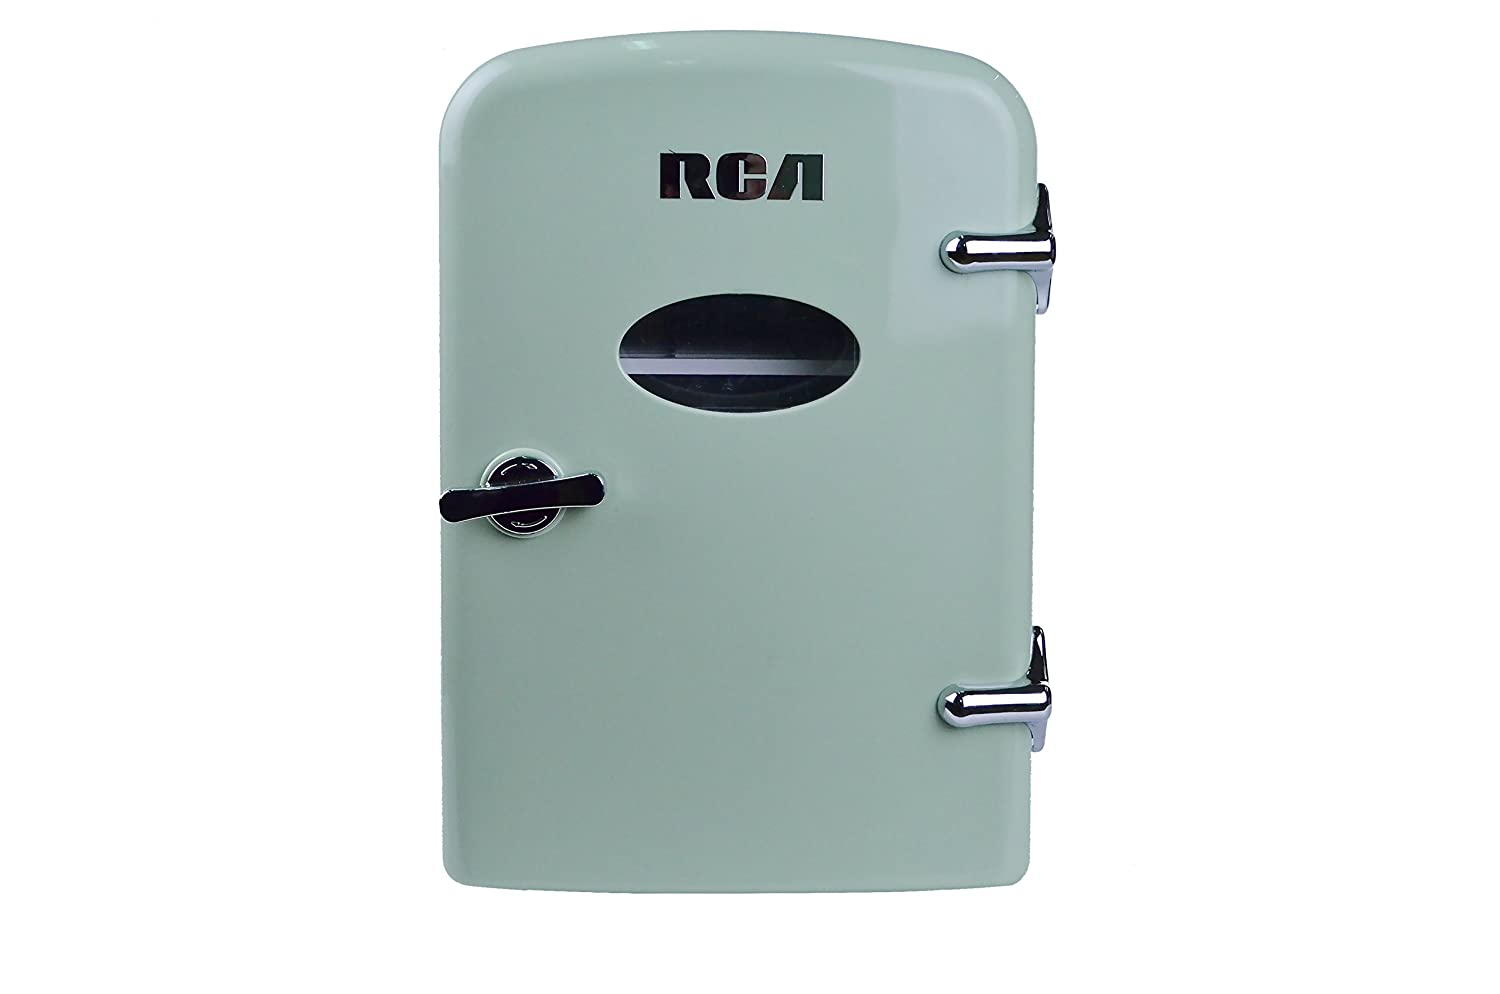 RCA Mini Compact Beverage Refrigerator, Mint Green, Great for the office, keep small meals cool